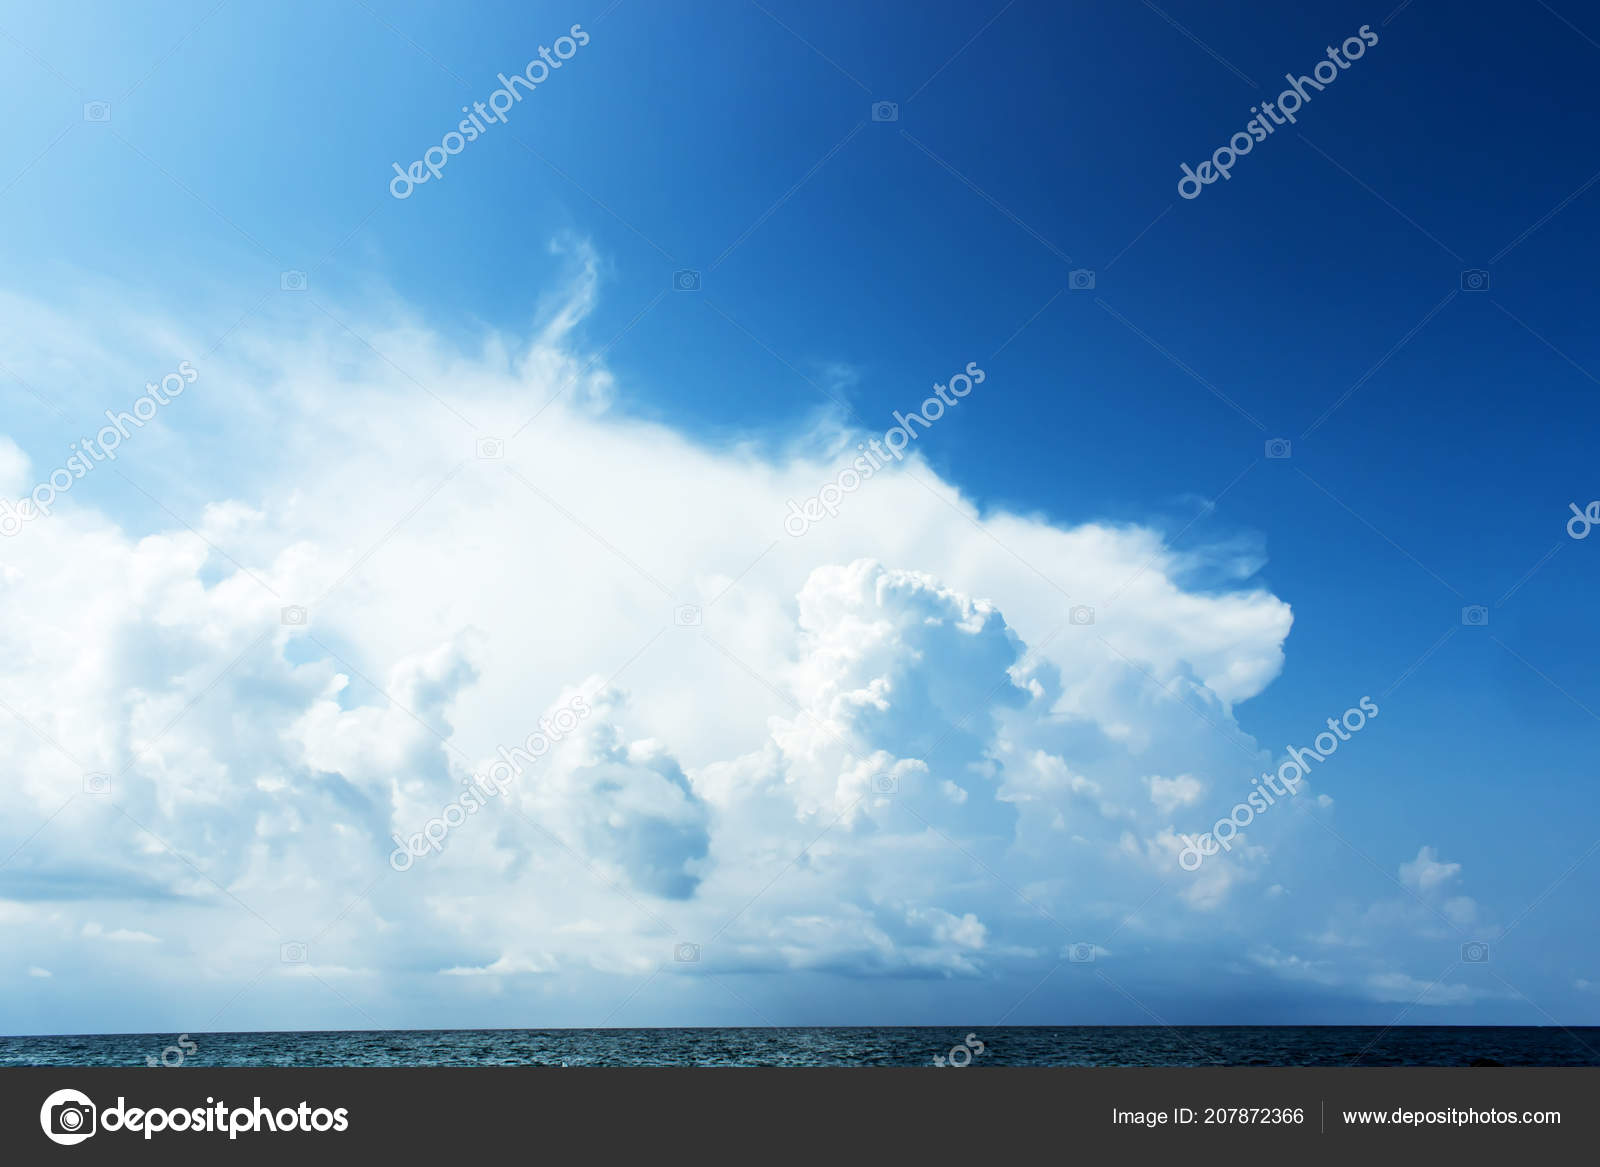 blue sky with clouds over the sea, wallpapers, seascape, background